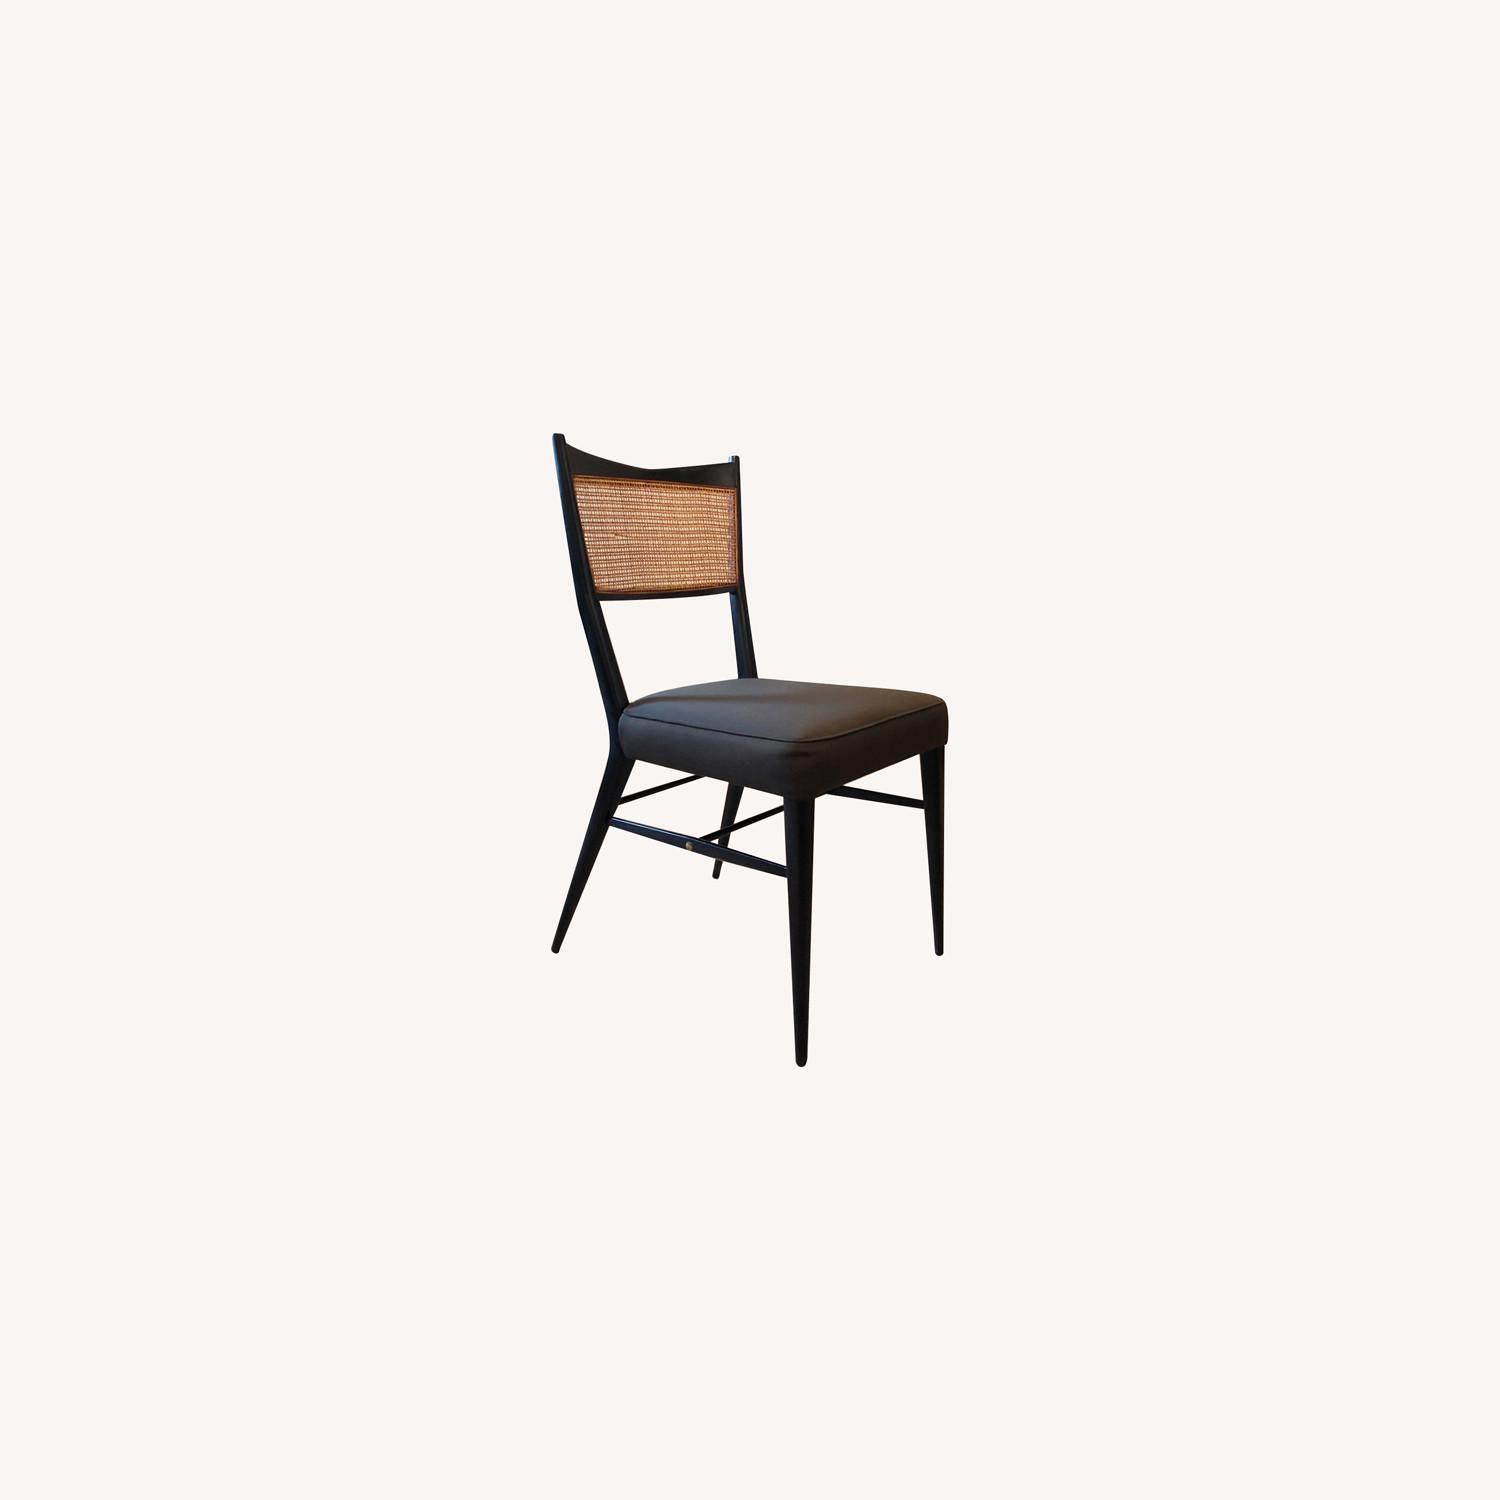 Paul McCobb Irwin Collection 4 Dining Chairs - image-0